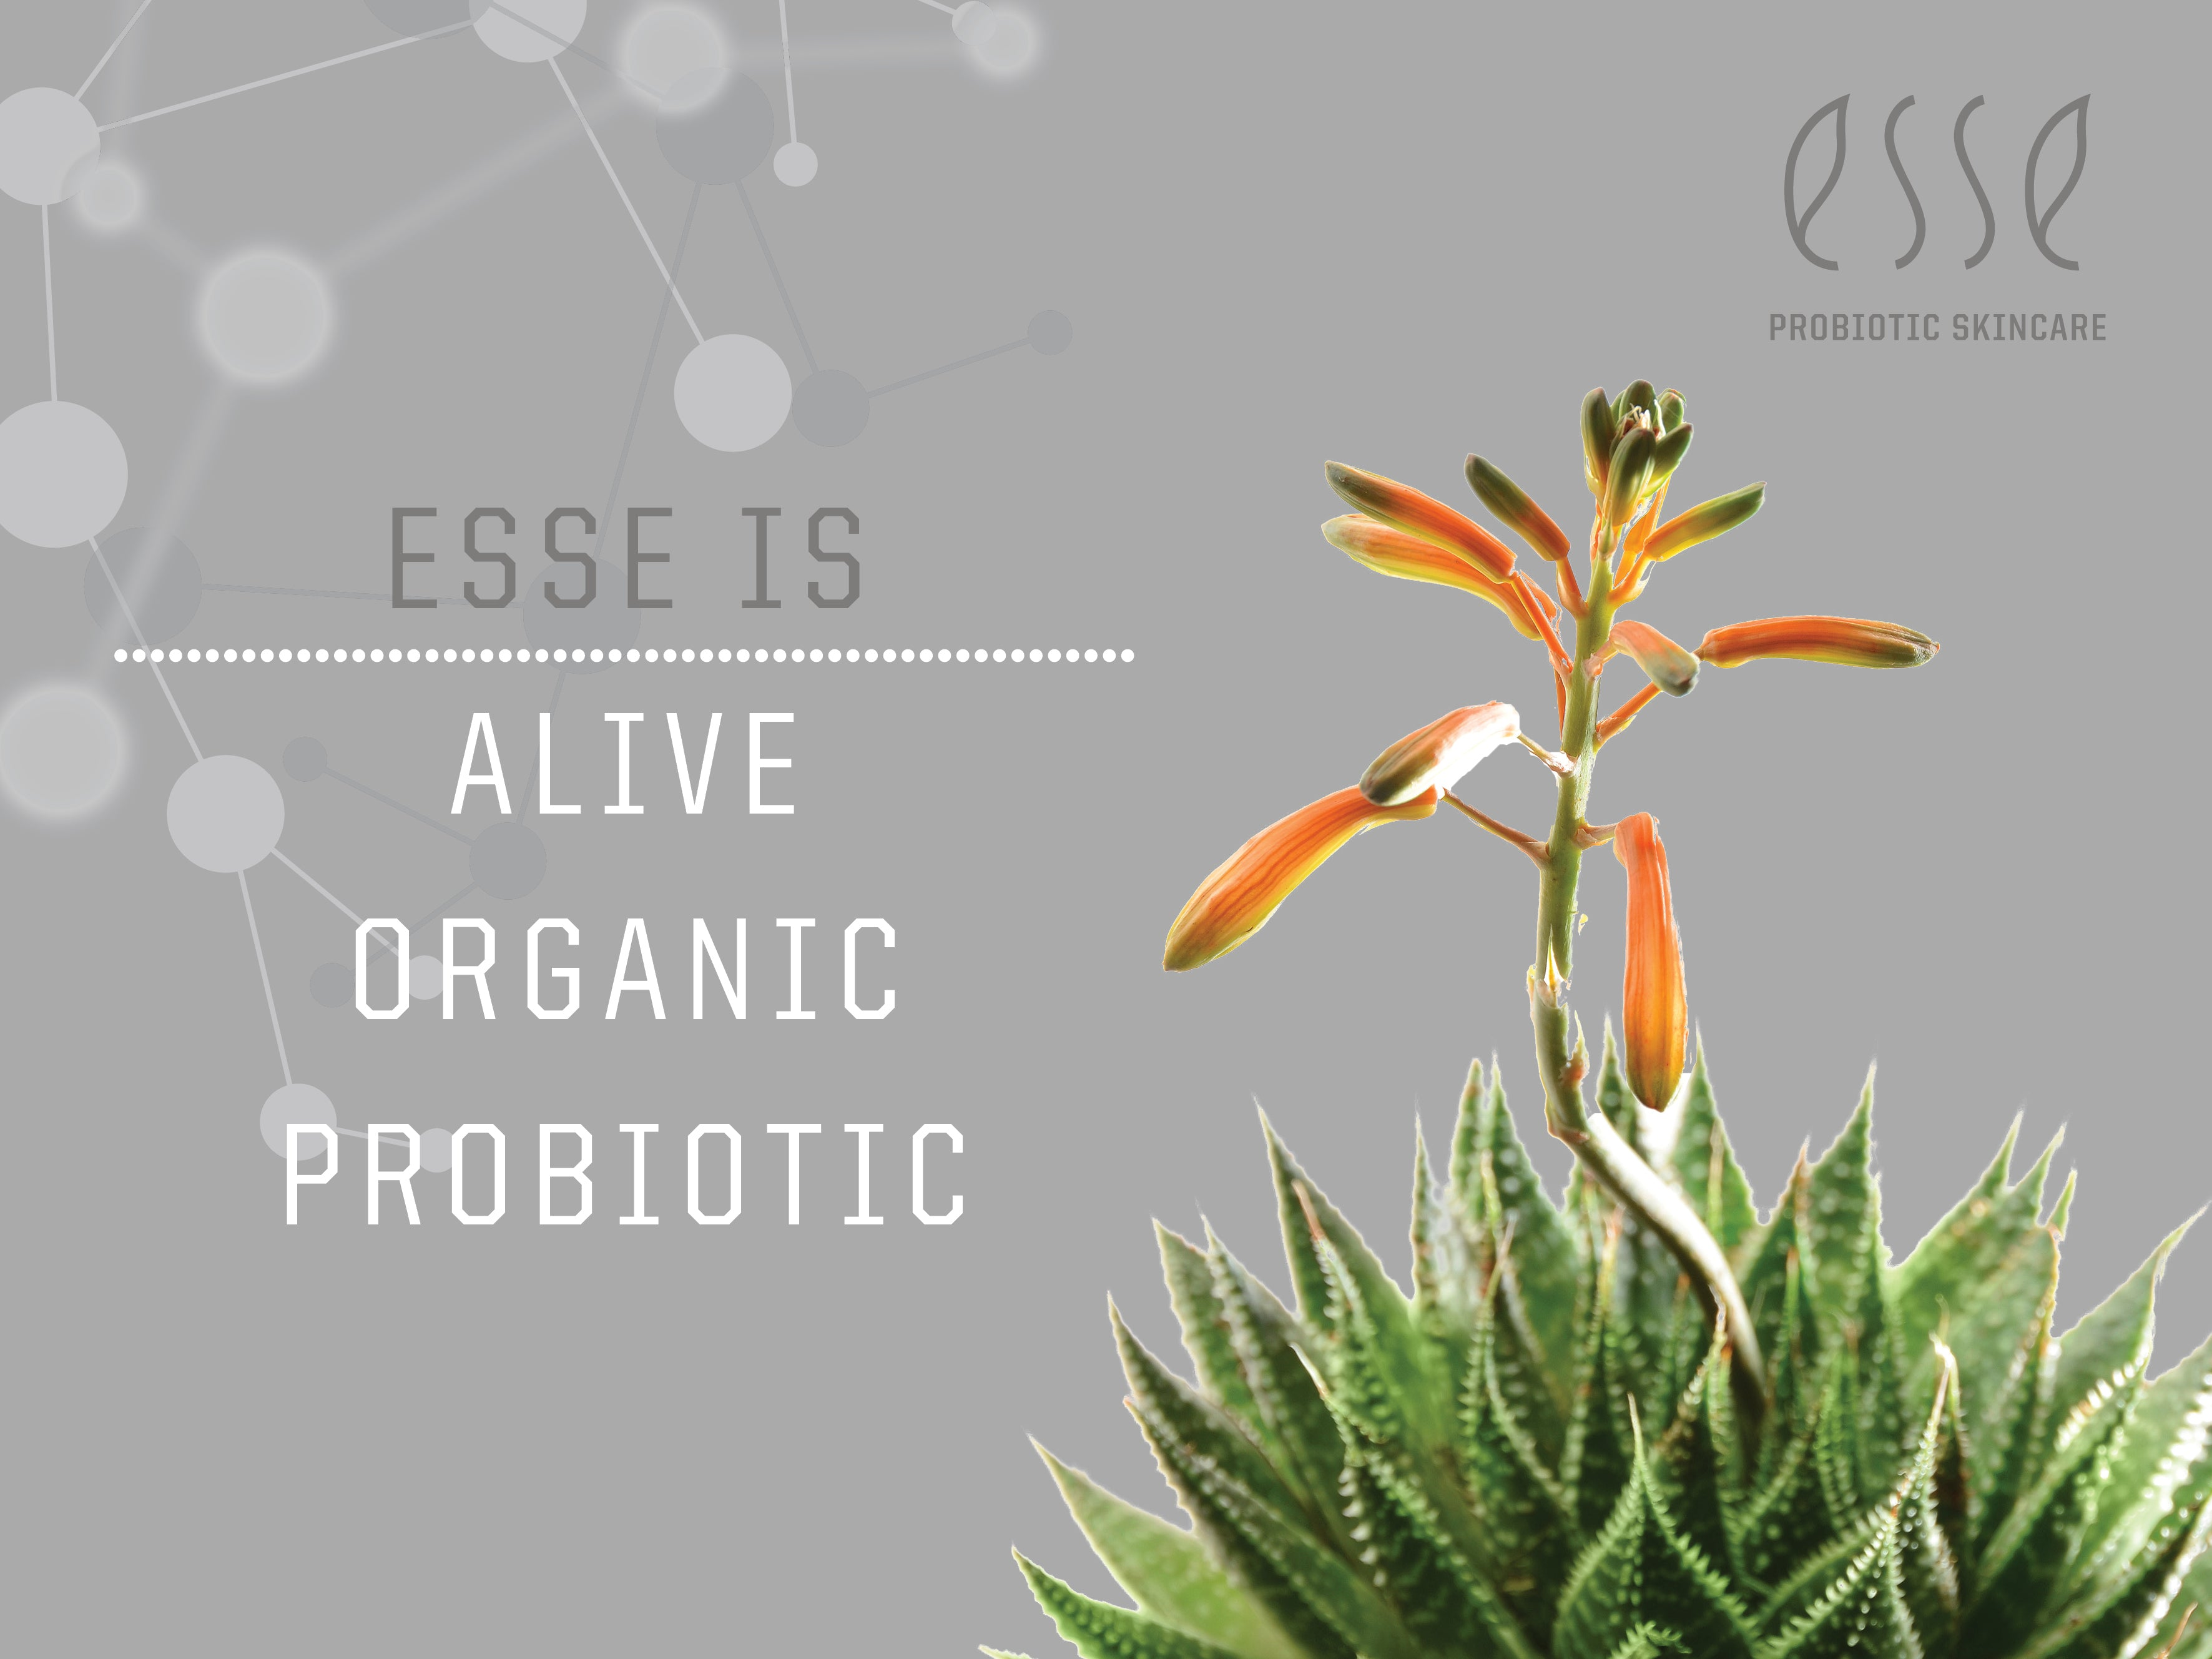 Esse is Alive, Organic and Probiotic